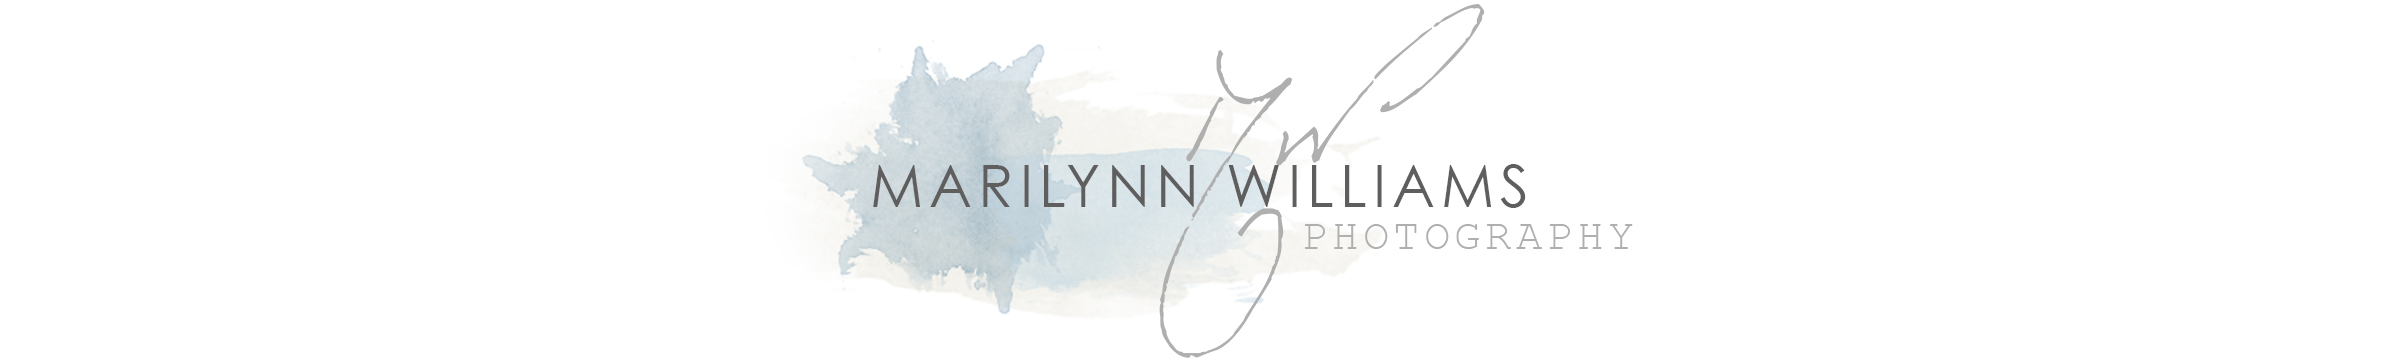 marilynn williams photography